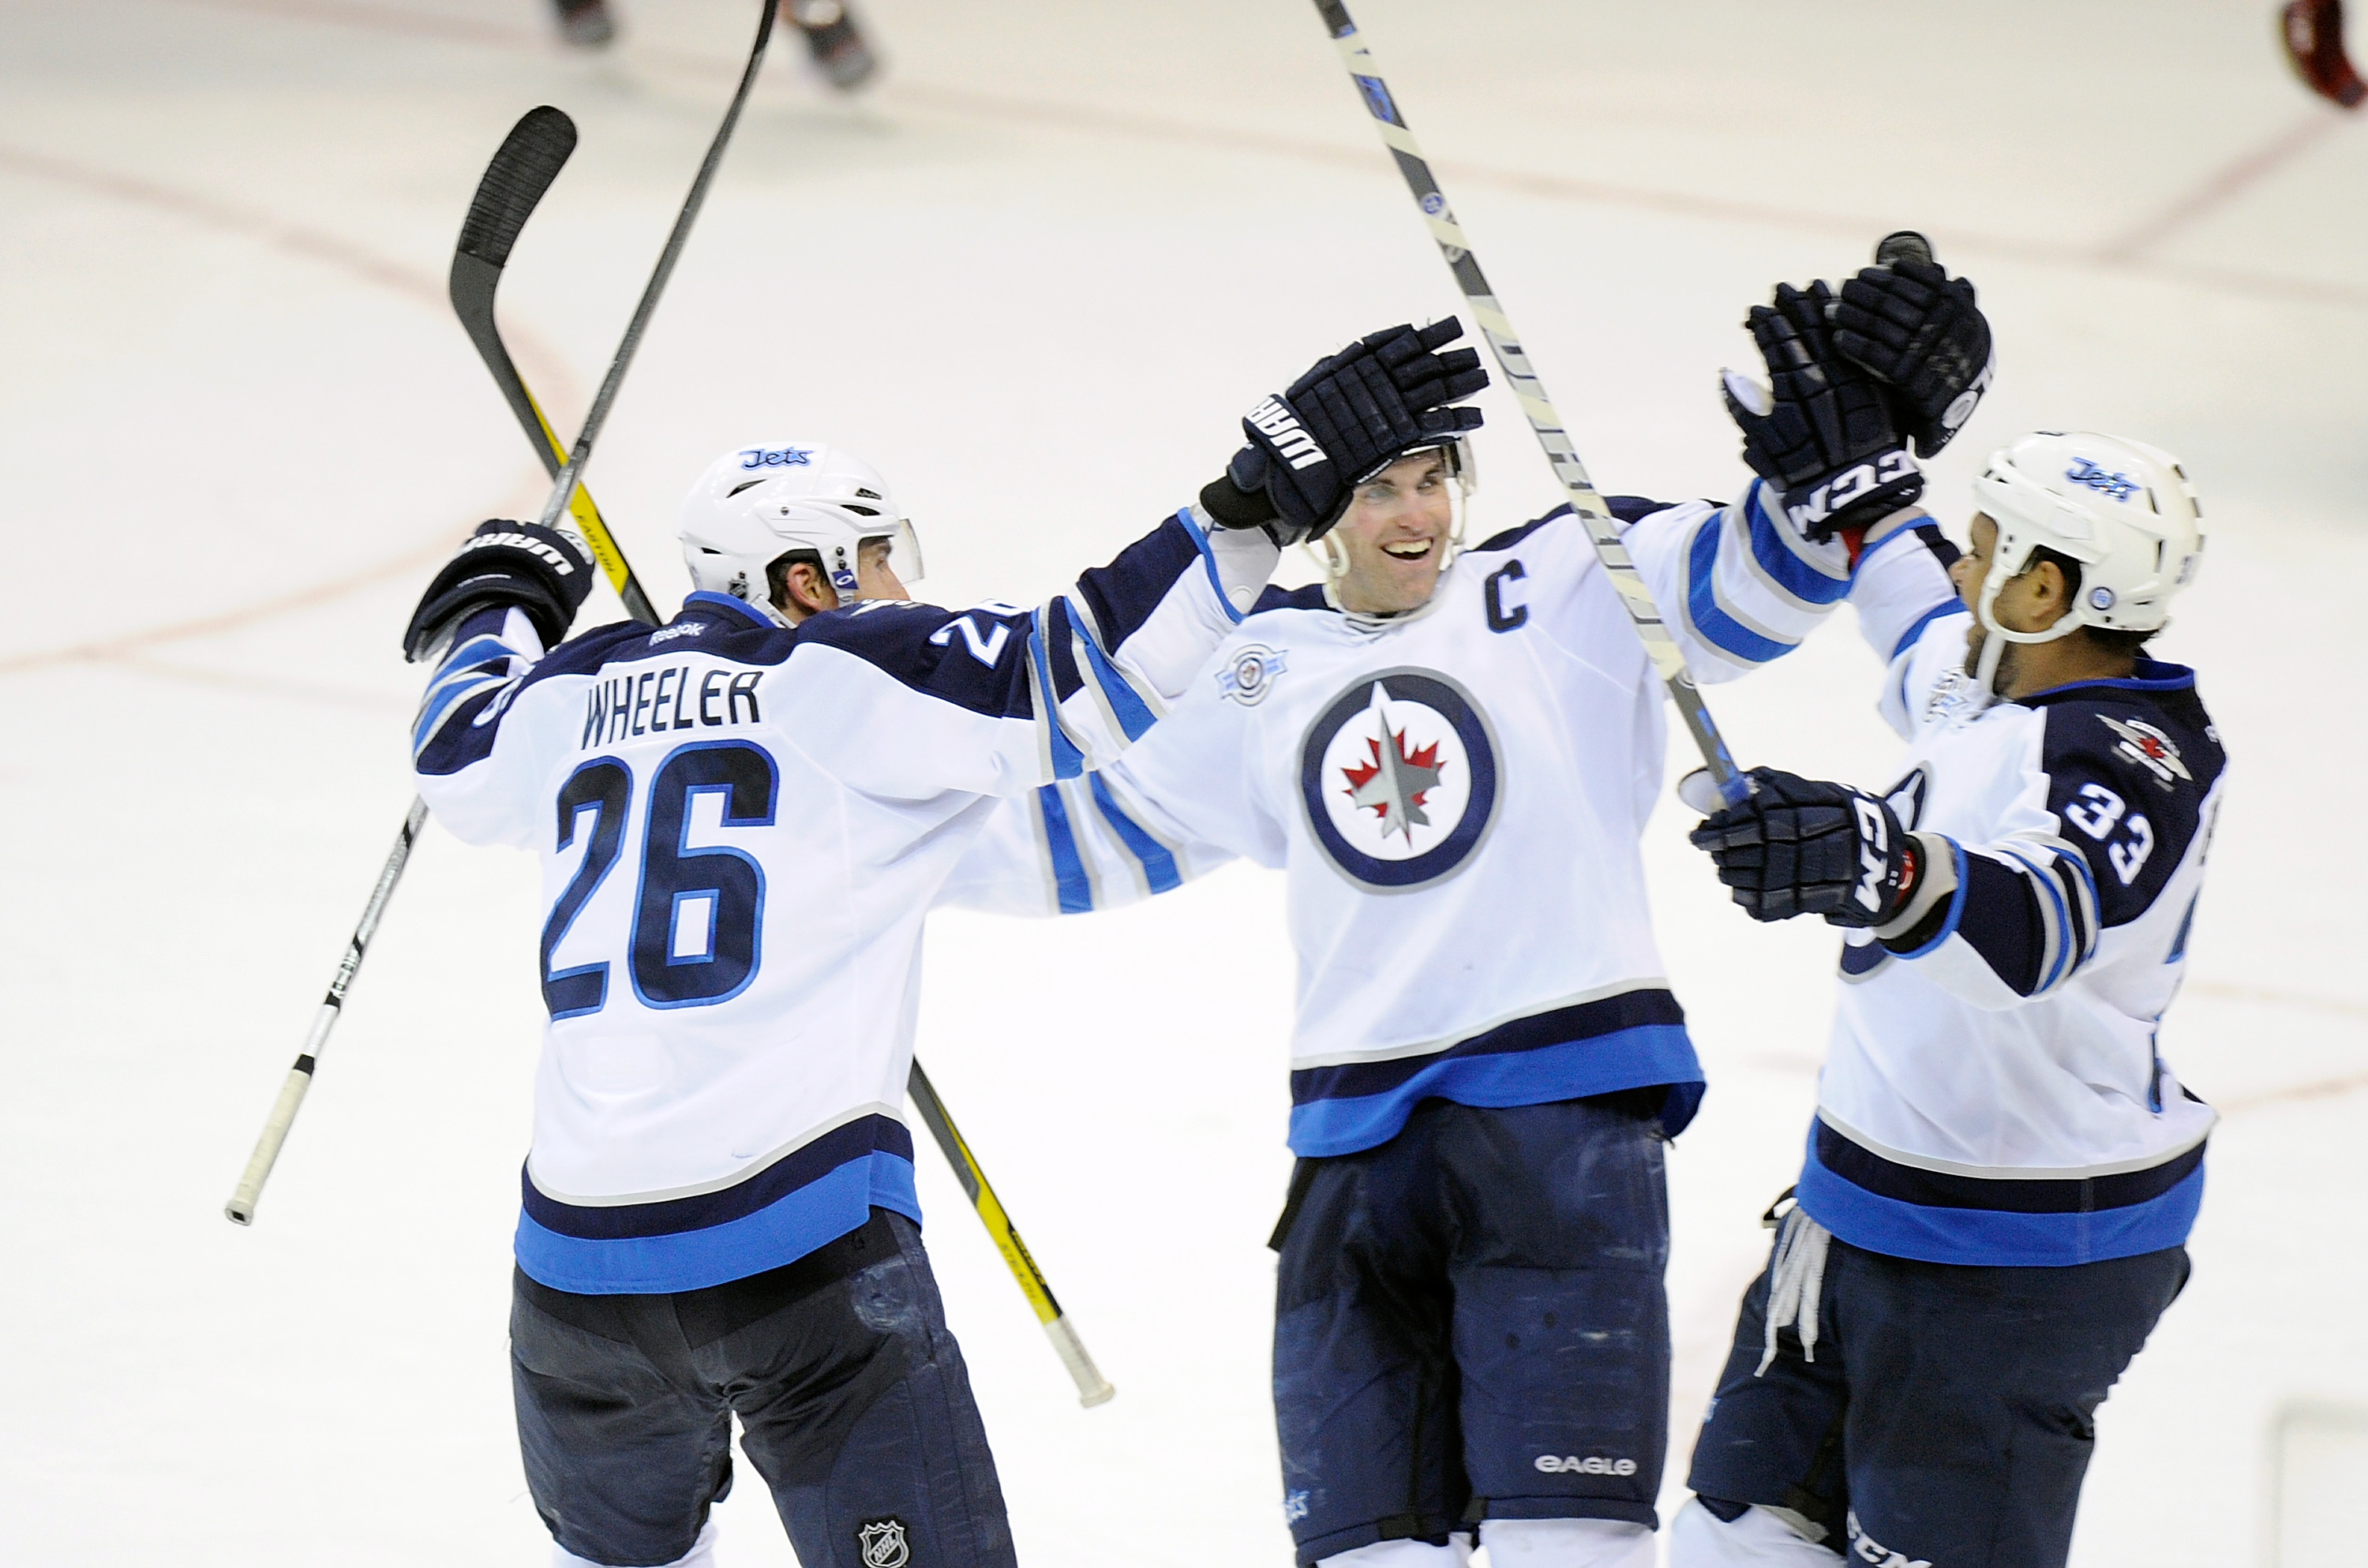 NHL Hockey - Winnipeg Jets